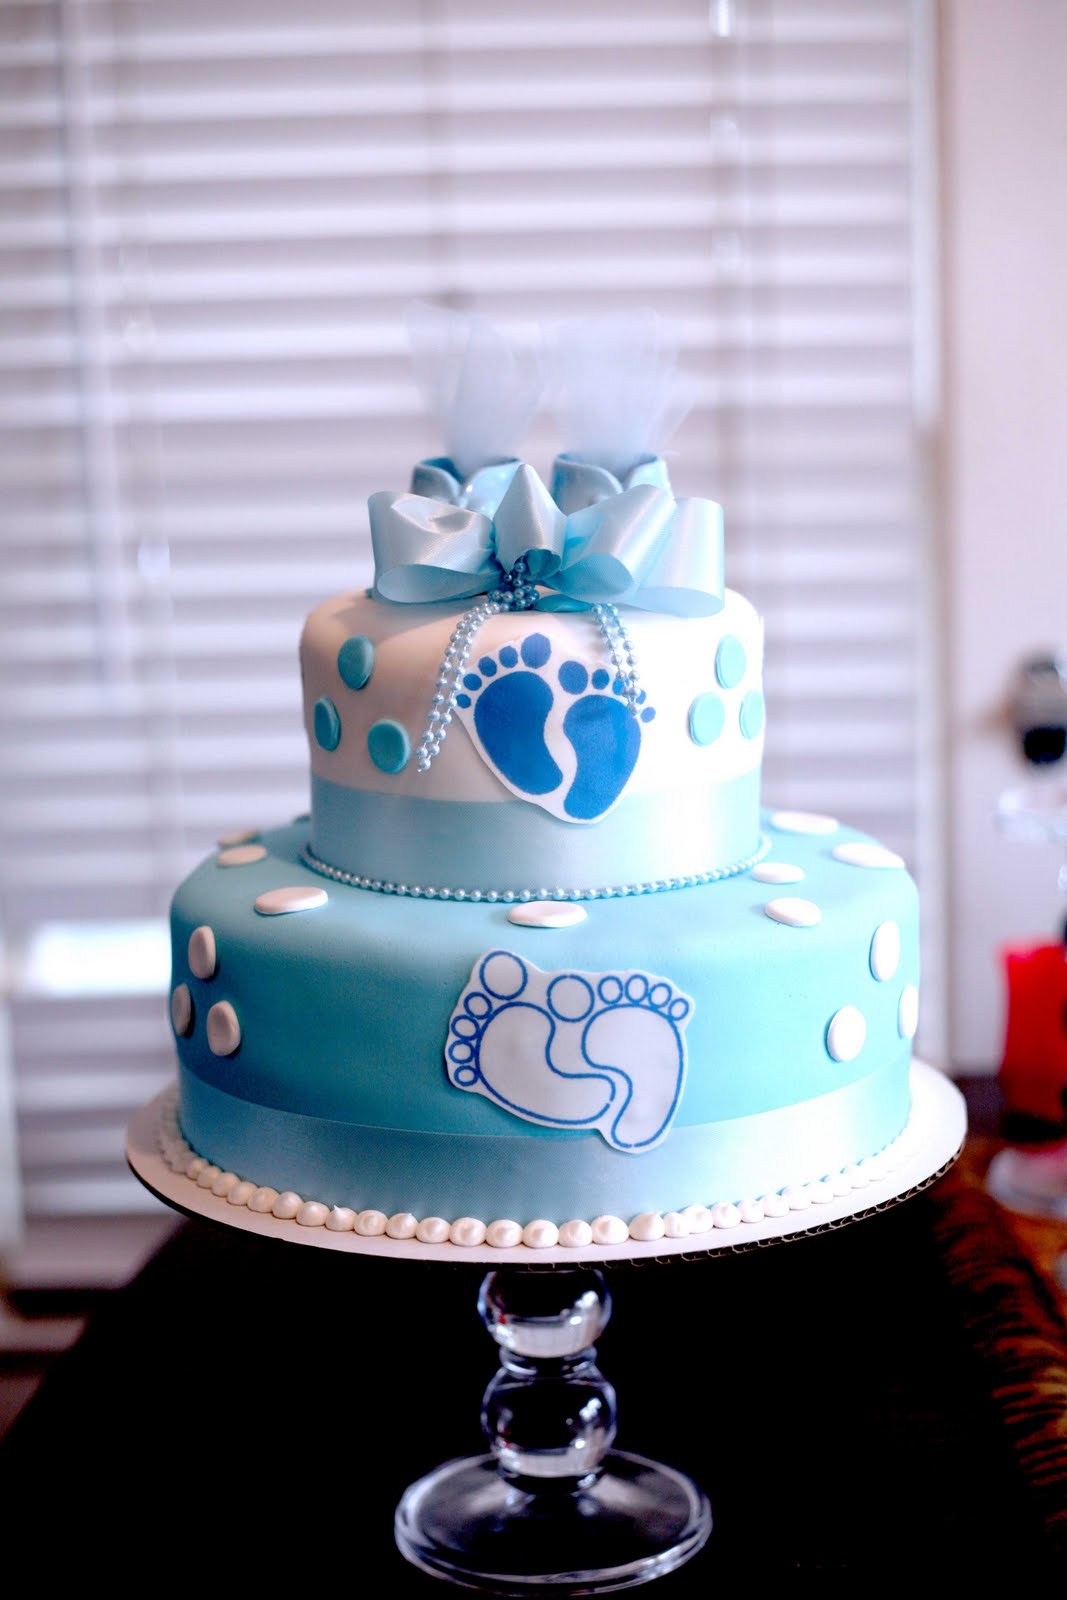 Hector S Custom Cakes Boy Baby Shower Cake 2 Tiered